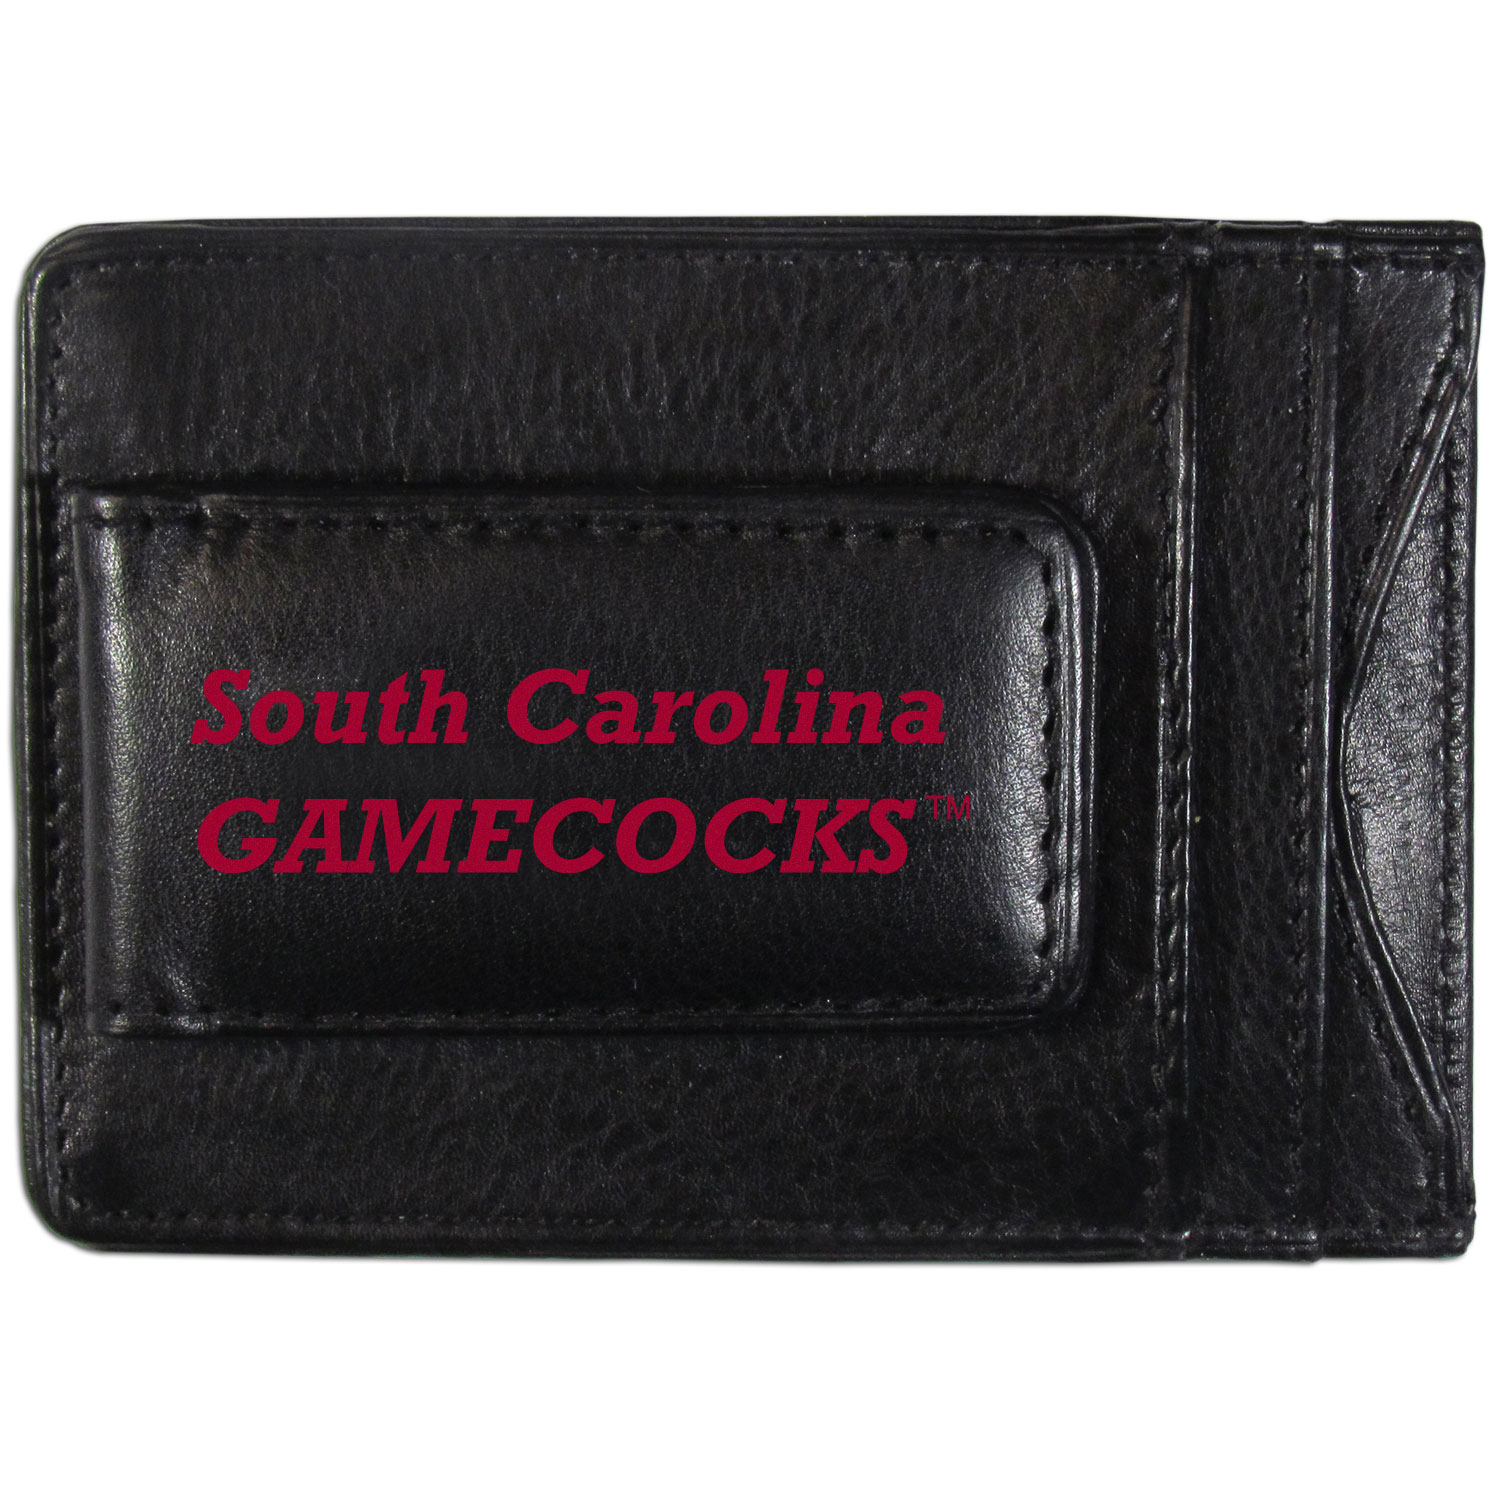 S. Carolina Gamecocks Logo Leather Cash and Cardholder - This super slim leather wallet lets you have all the benefits of a money clip while keeping the organization of a wallet. On one side of this front pocket wallet there is a strong, magnetic money clip to keep your cash easily accessible and the?S. Carolina Gamecocks team logo on the front. The versatile men's accessory is a perfect addition to your fan apparel.